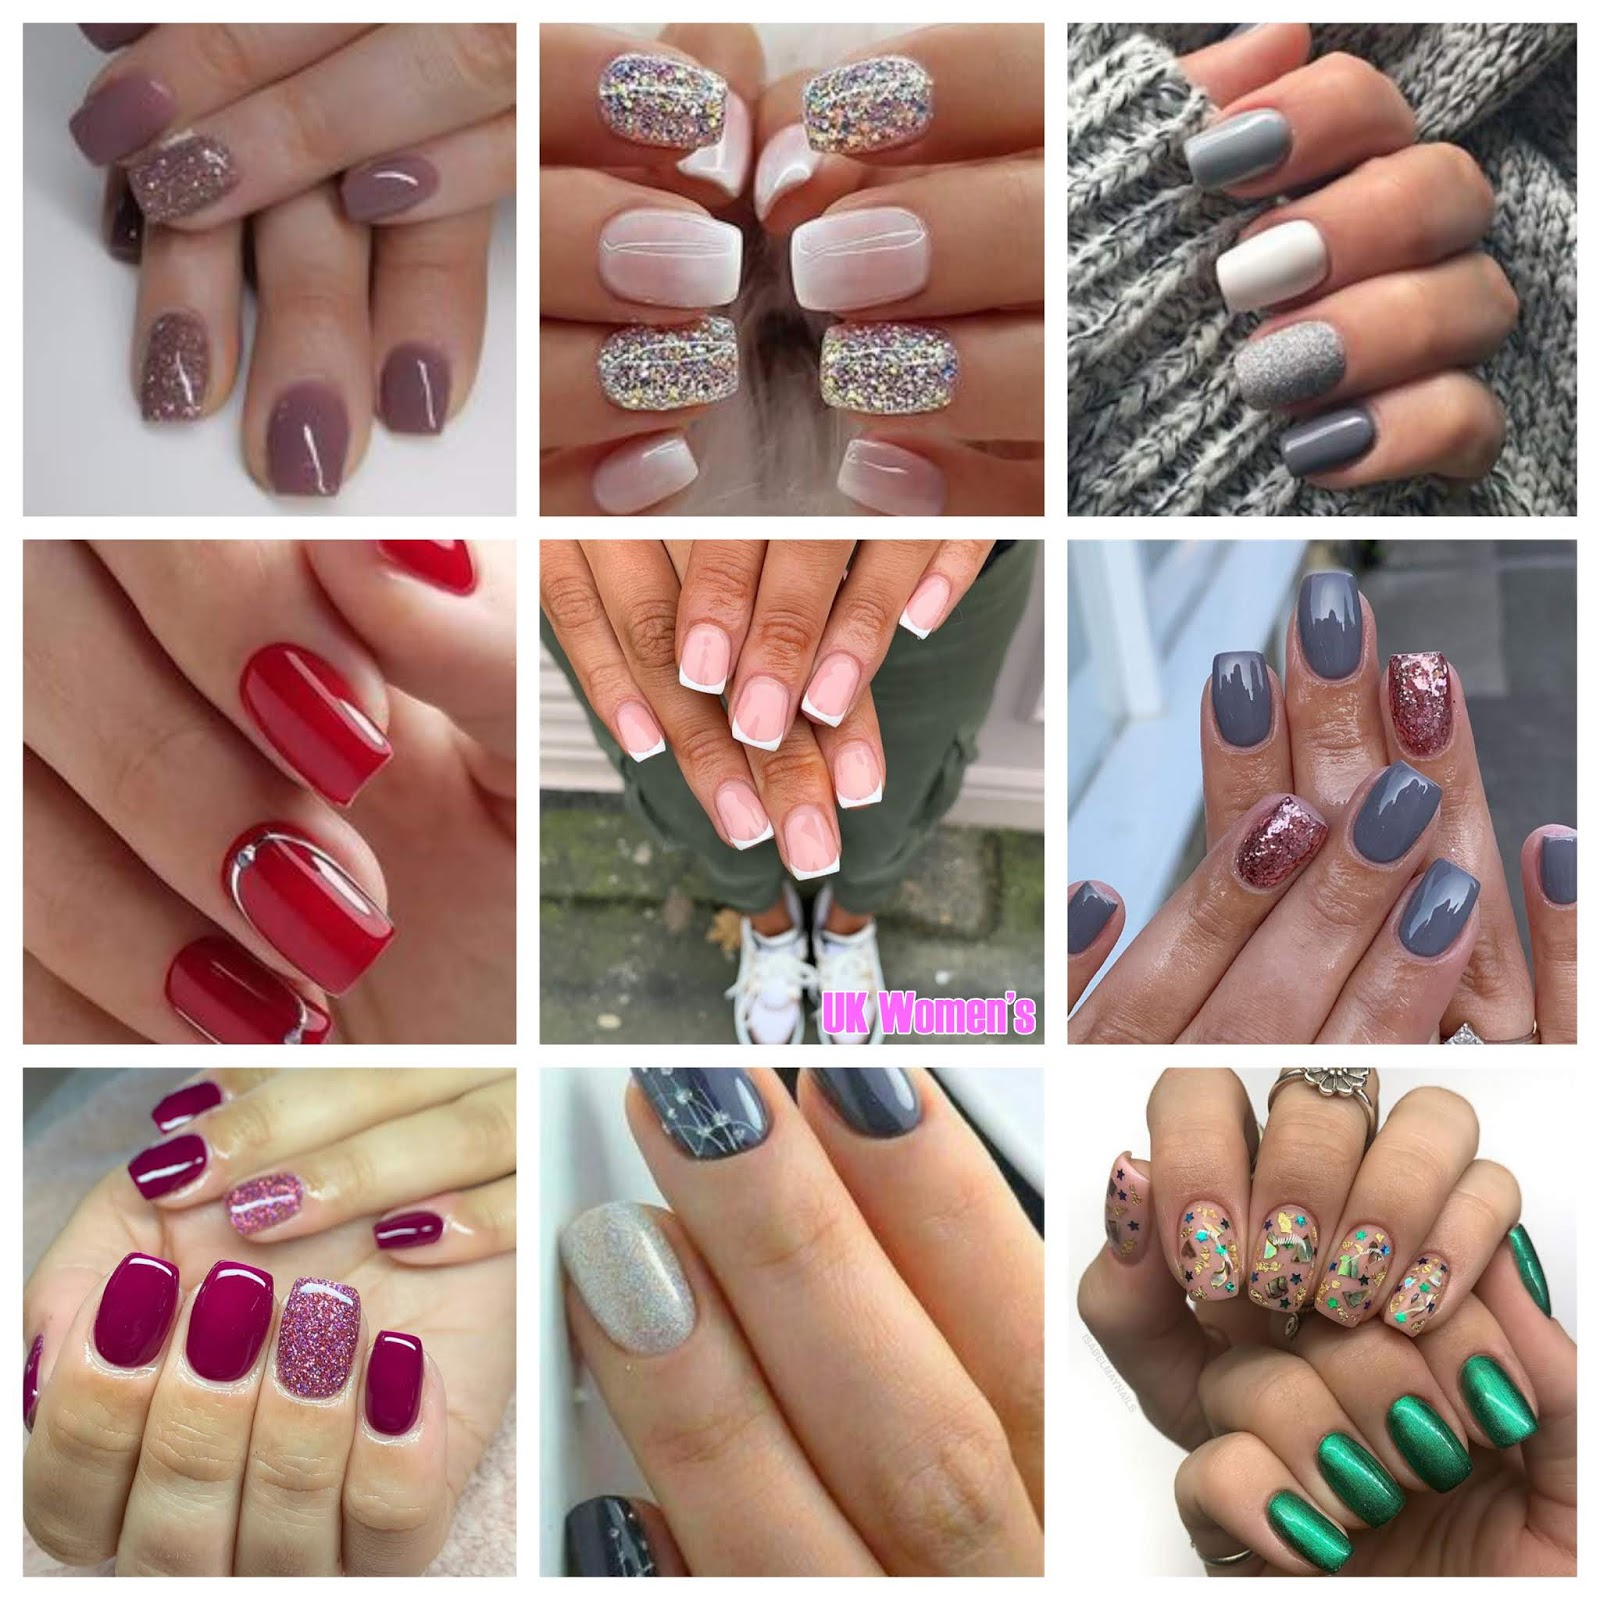 Short-Nails-Art-Designs-To-Try-1-1 Newest Short Nails Art Designs To Try In 2020